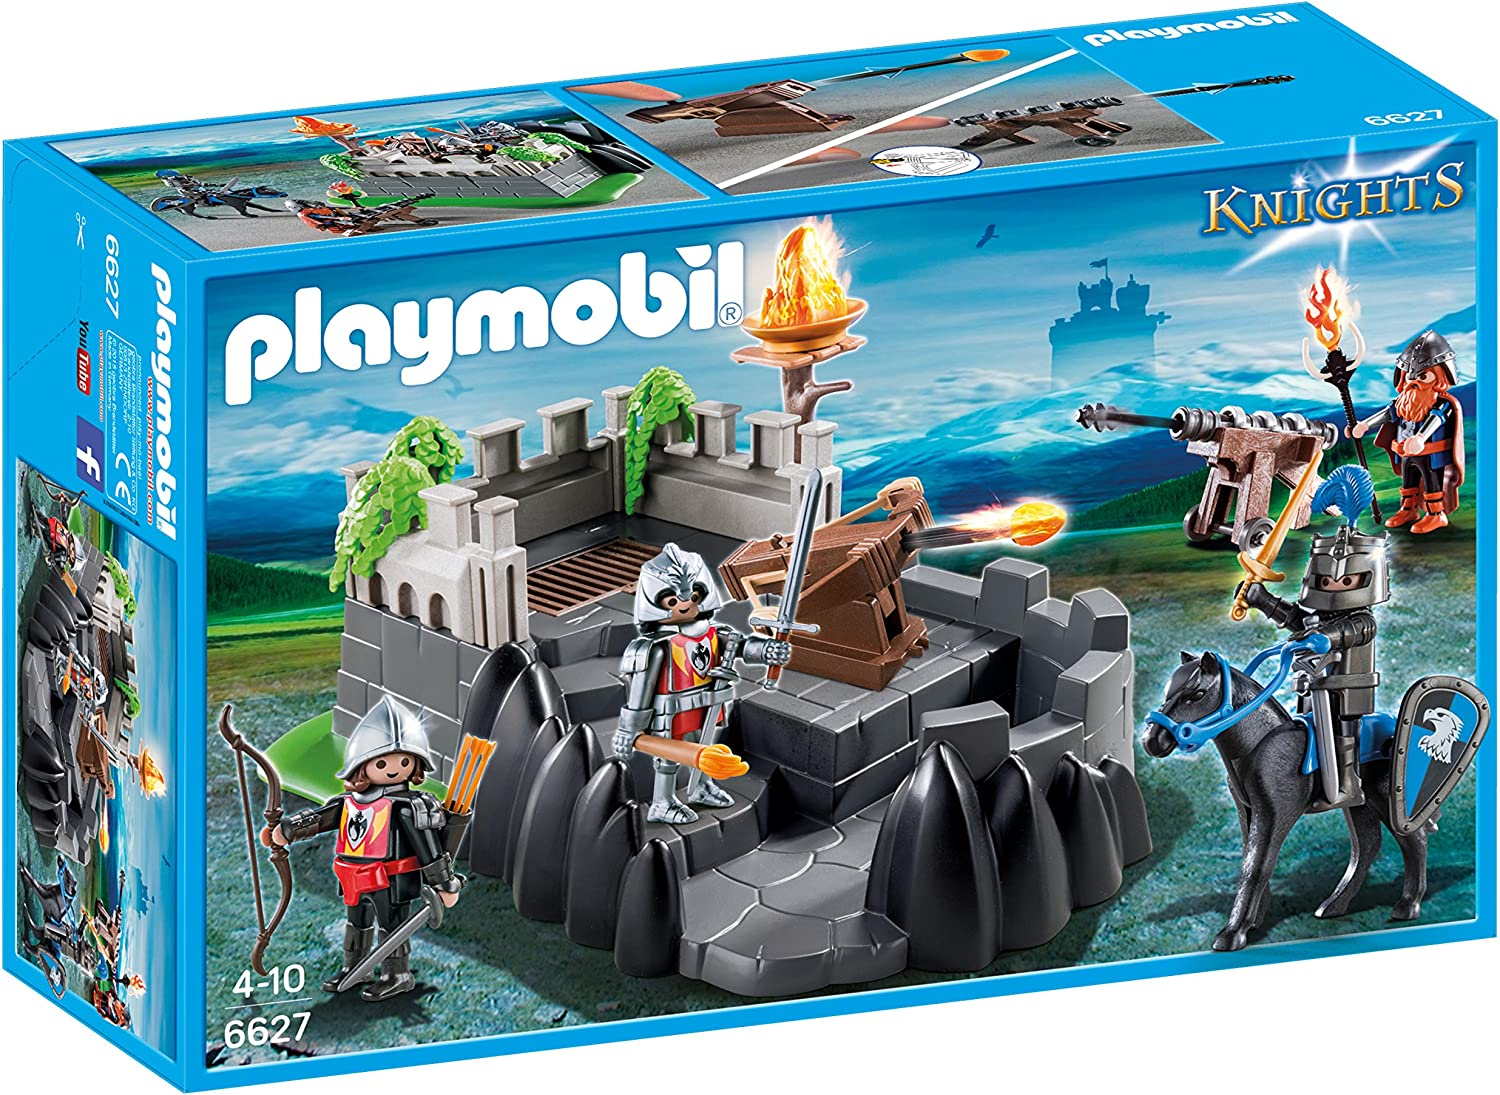 PLAYMOBIL Caballeros- Dragon Knights' Fort Playset, Multicolor, Miscelanea (6627)